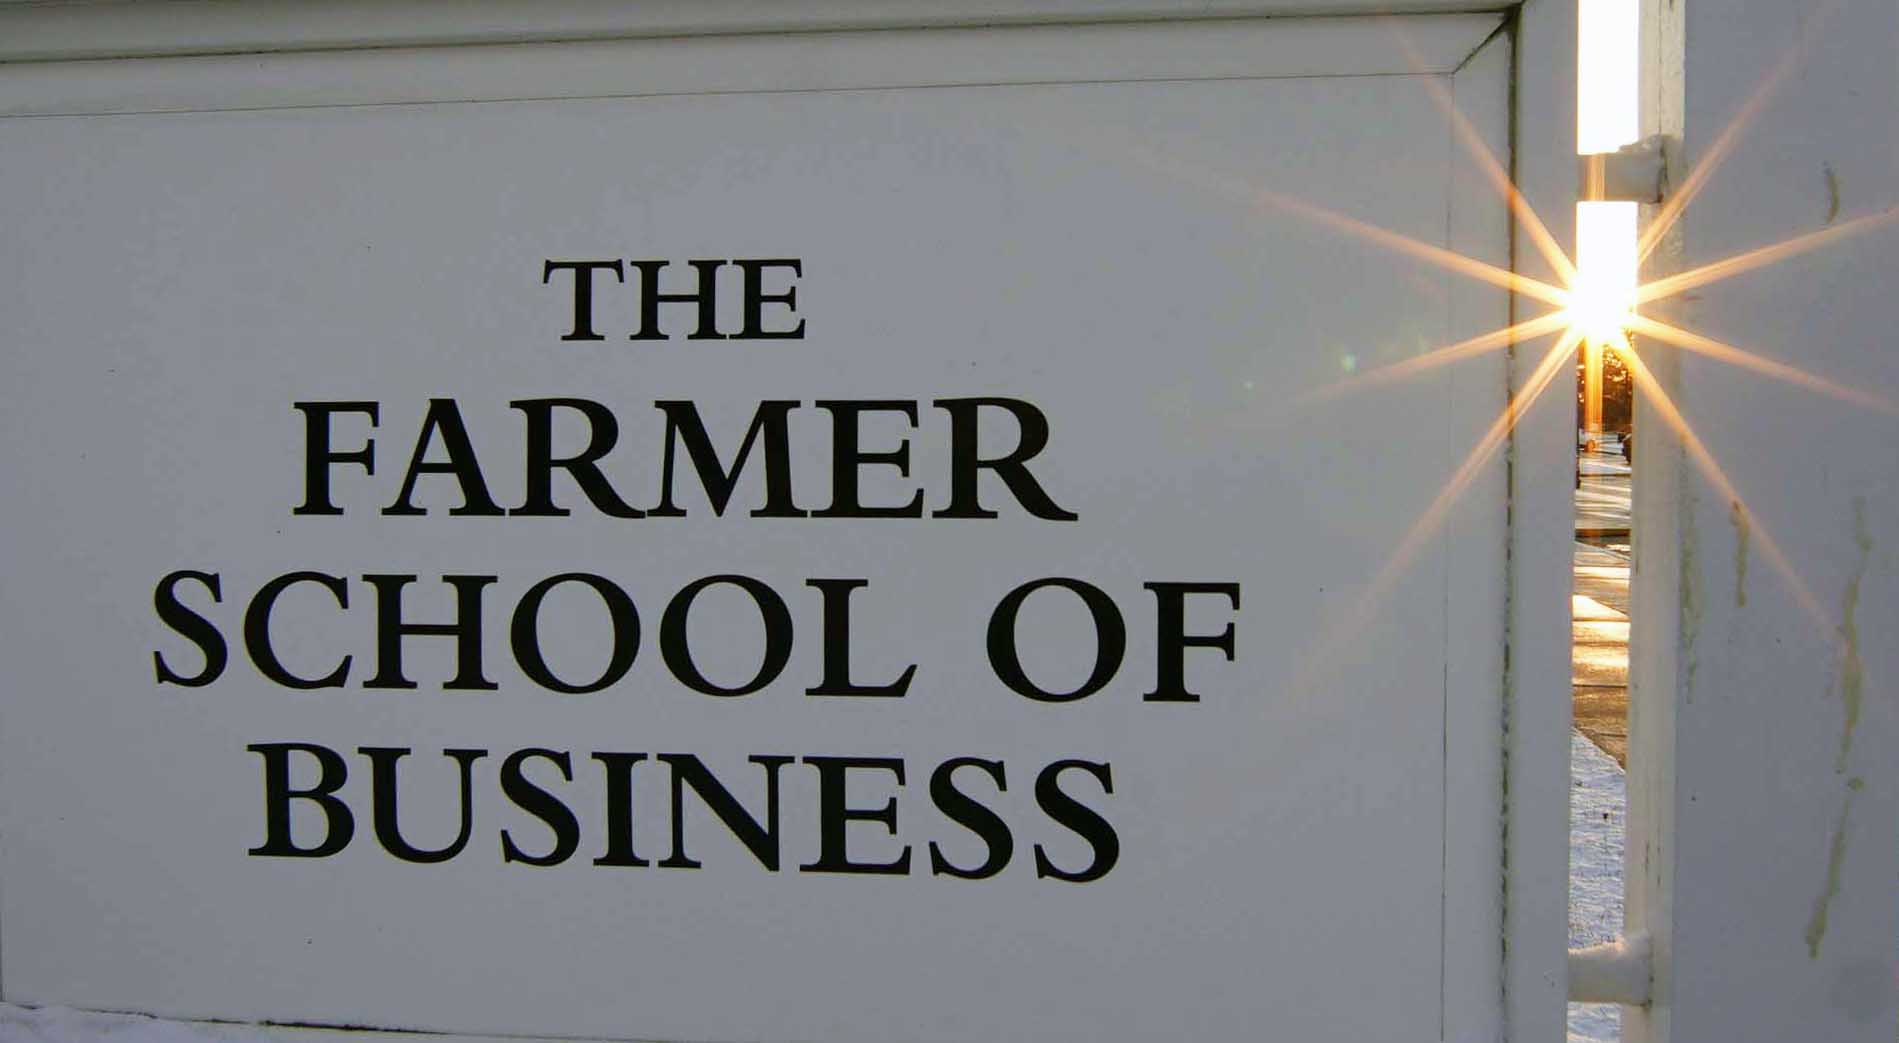 Farmer School sign with sunburst on right side